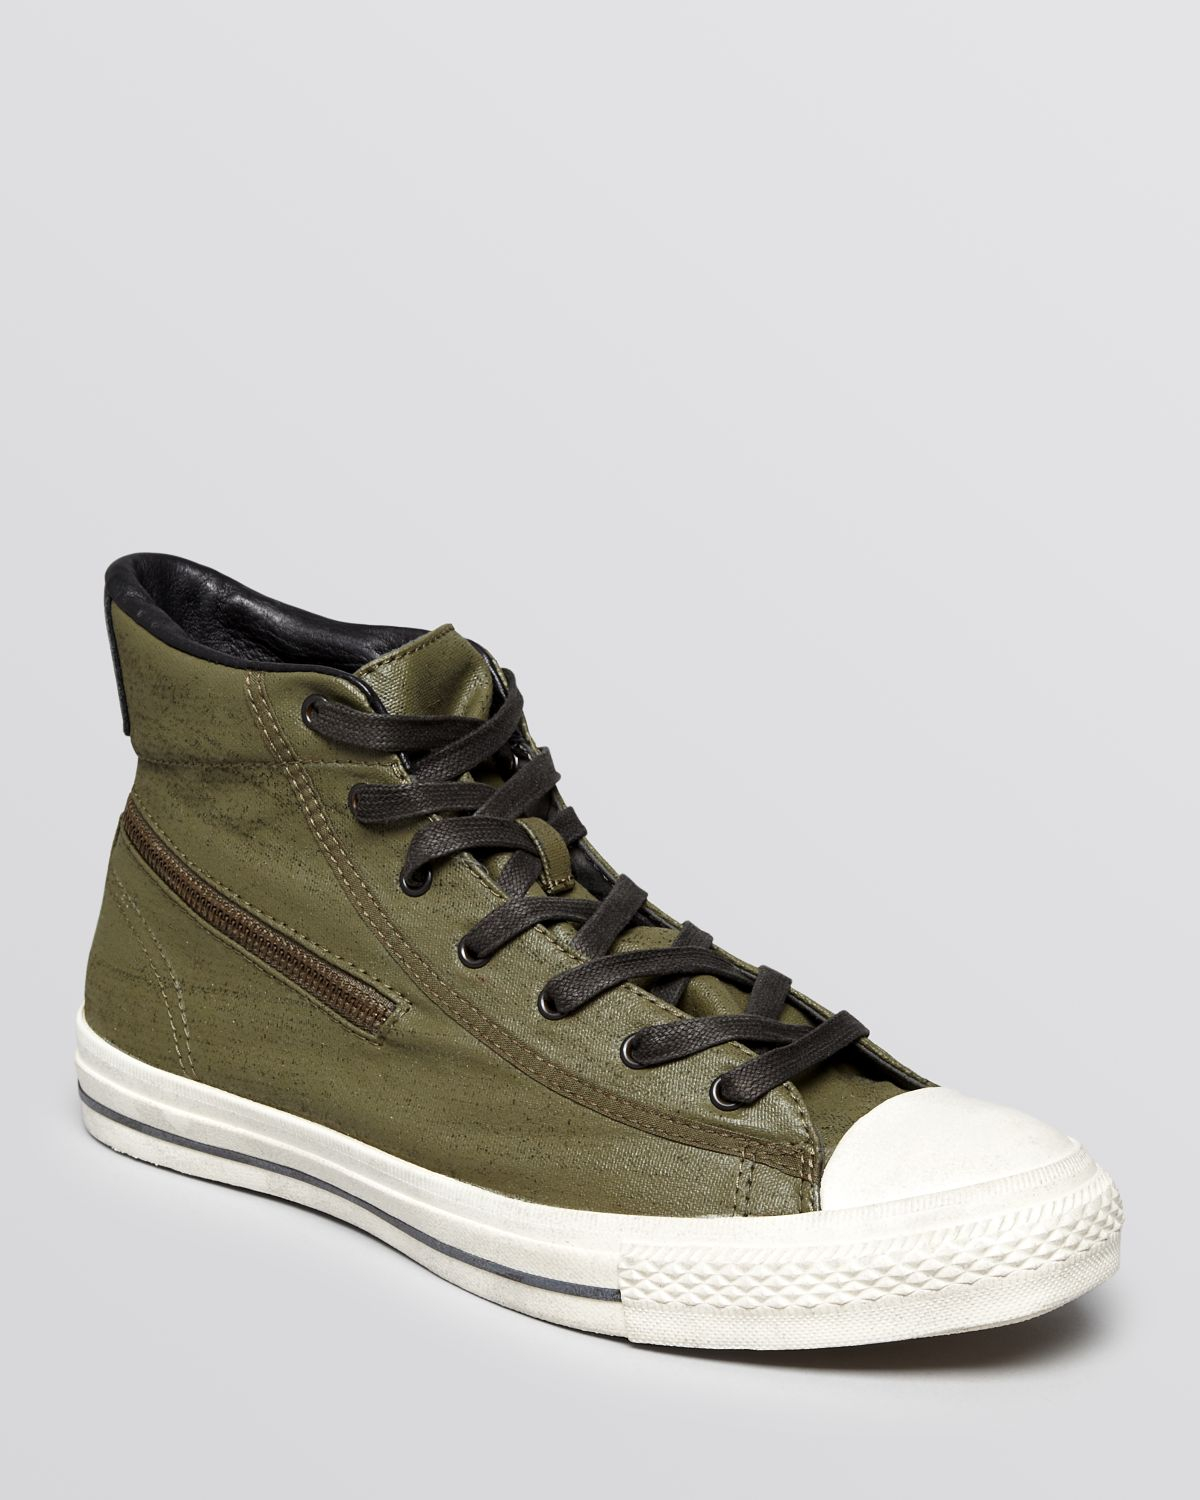 ... inexpensive lyst converse chuck taylor all star zip high top sneakers  in green 92f48 a6e04 669d5f303